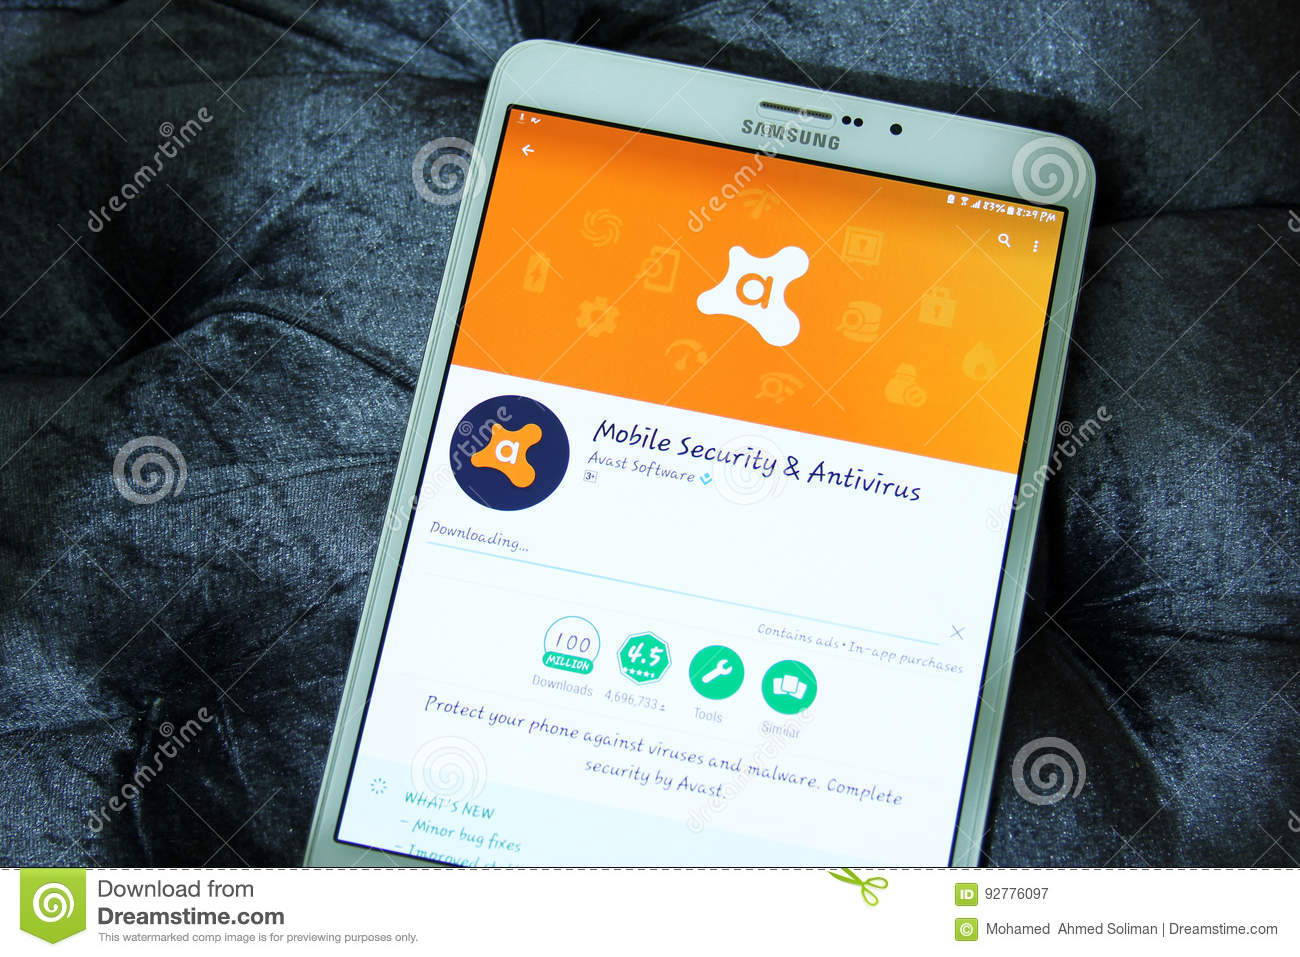 avast mobile security 2018 - antivirus & app lock apk